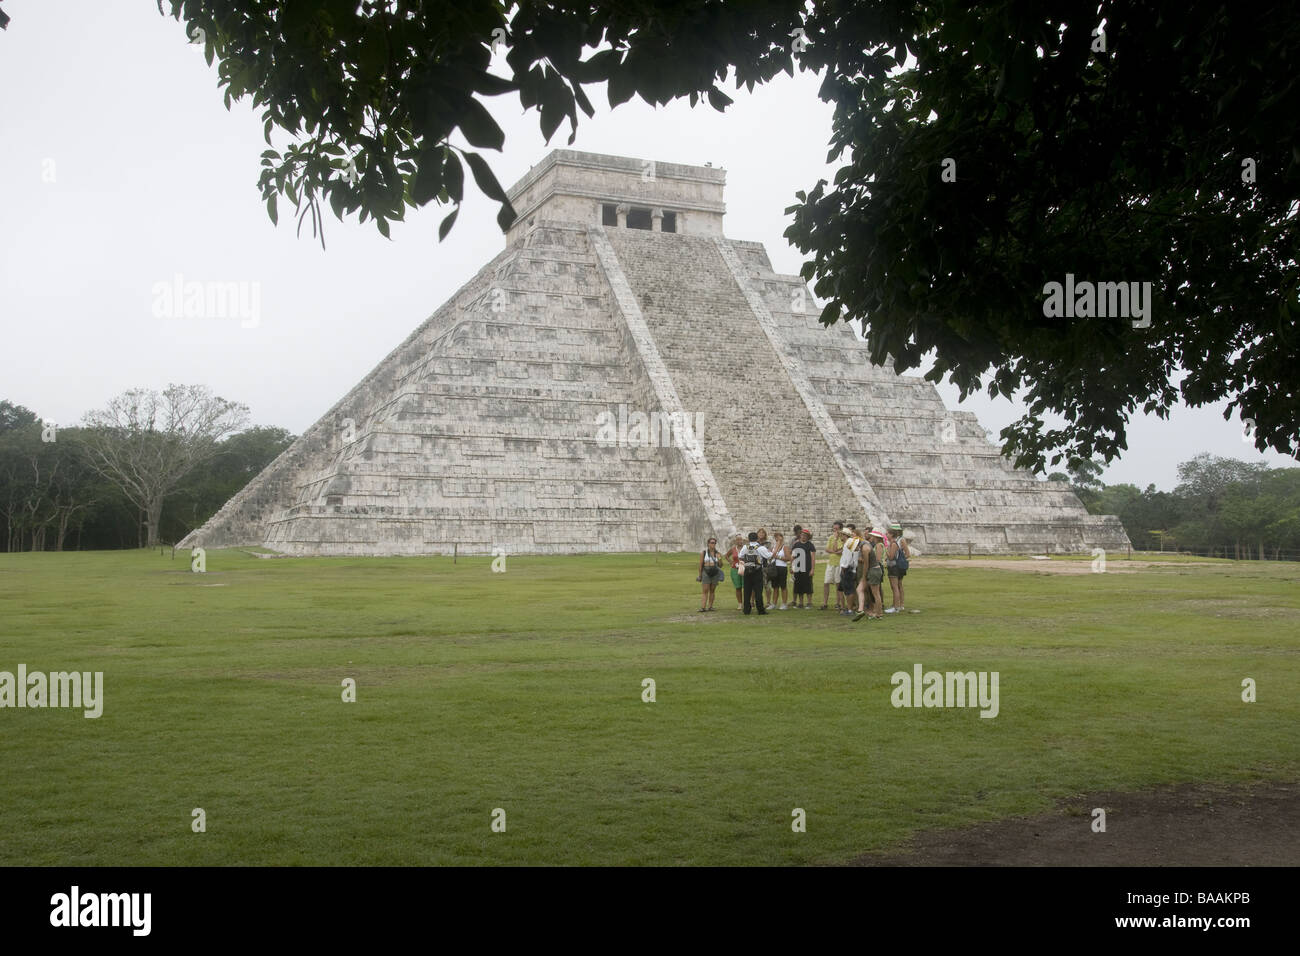 Chichen Itza is a large pre-Columbian archaeological site built by the Maya civilization located in the northern - Stock Image